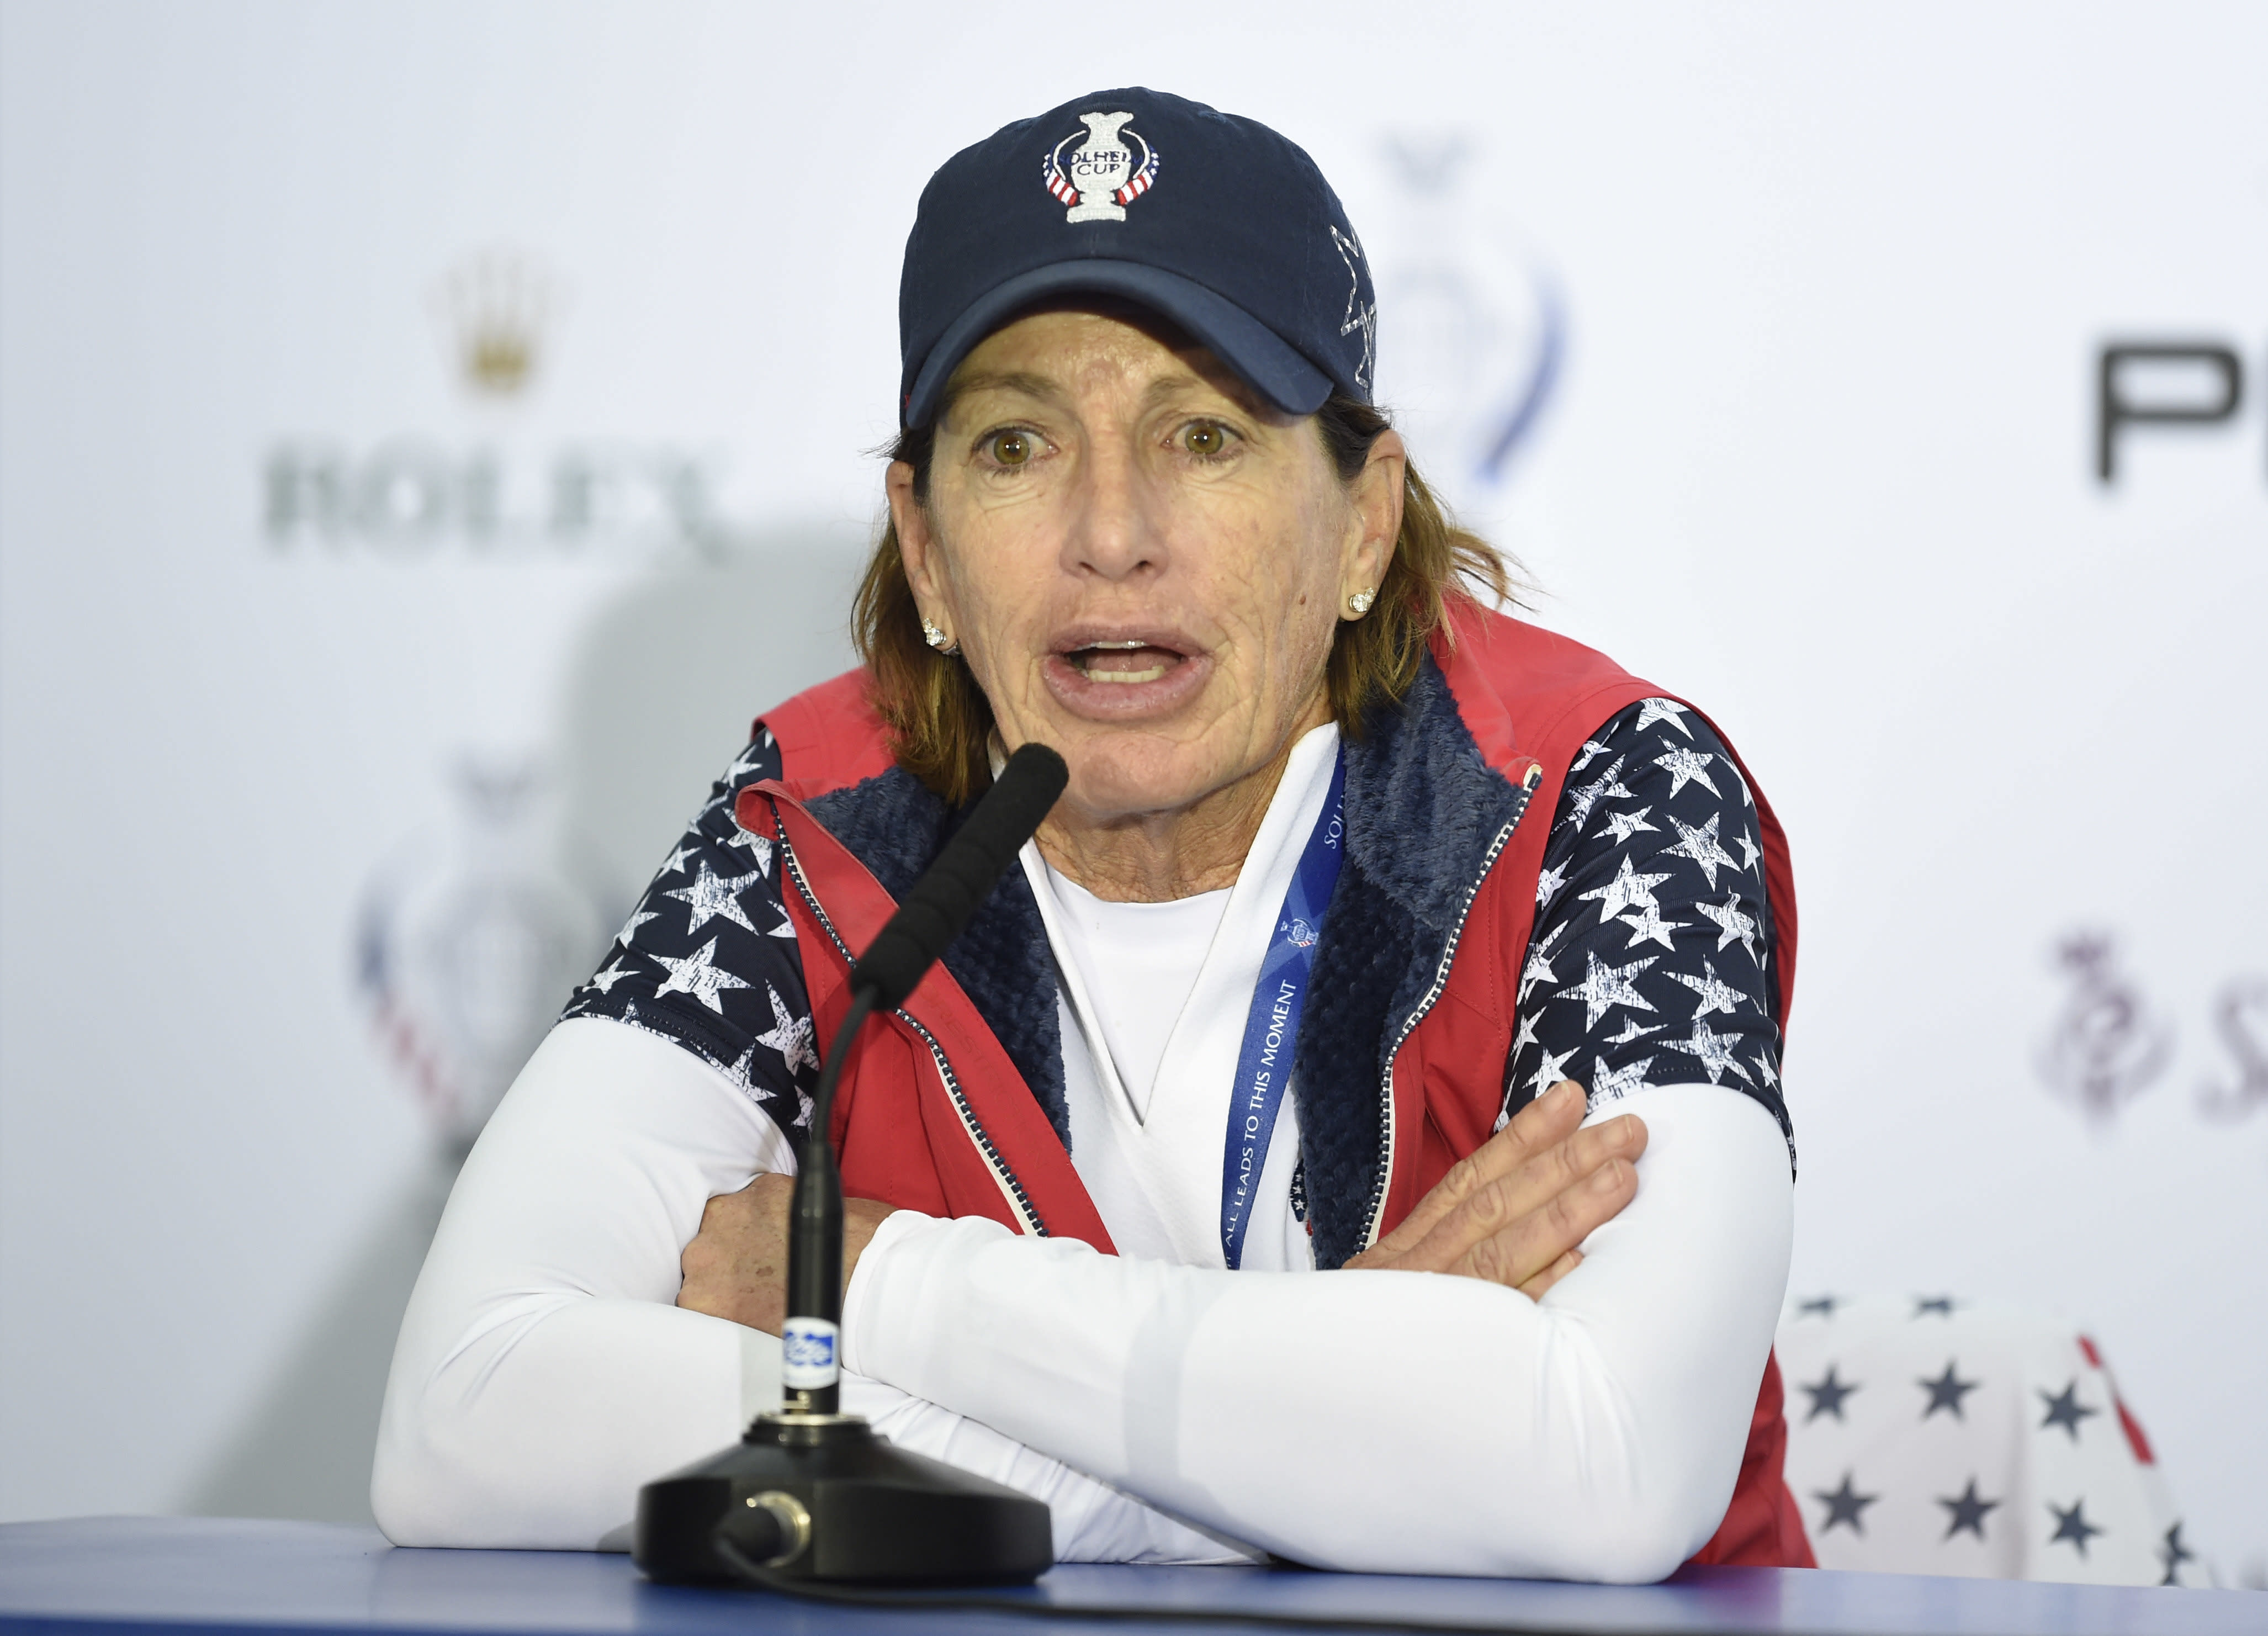 Team USA captain Juli Inkster speaks during a press conference after the singles match on day three of the 2019 Solheim Cup at Gleneagles Golf Club, Auchterarder, Scotland, Sunday Sept. 15, 2019. (Ian Rutherford/PA via AP)